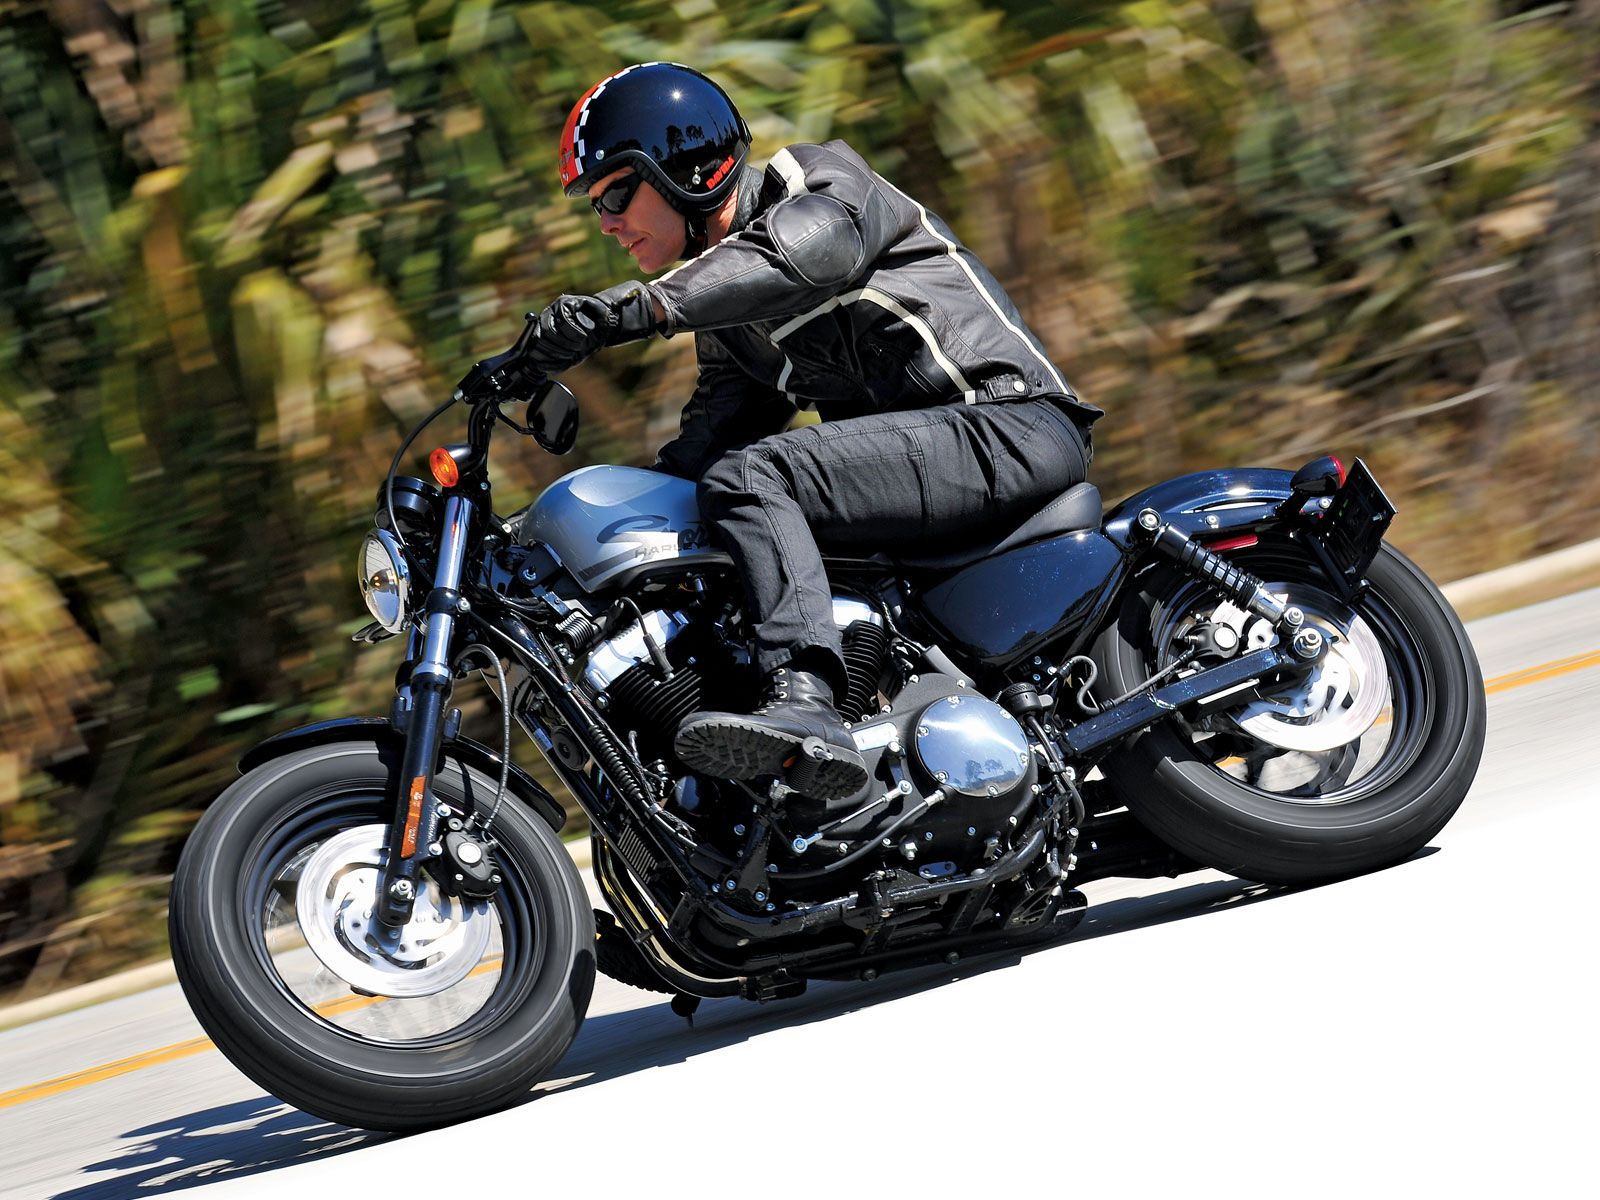 Harley Davidson Sportster Forty Eight Motorcyclist